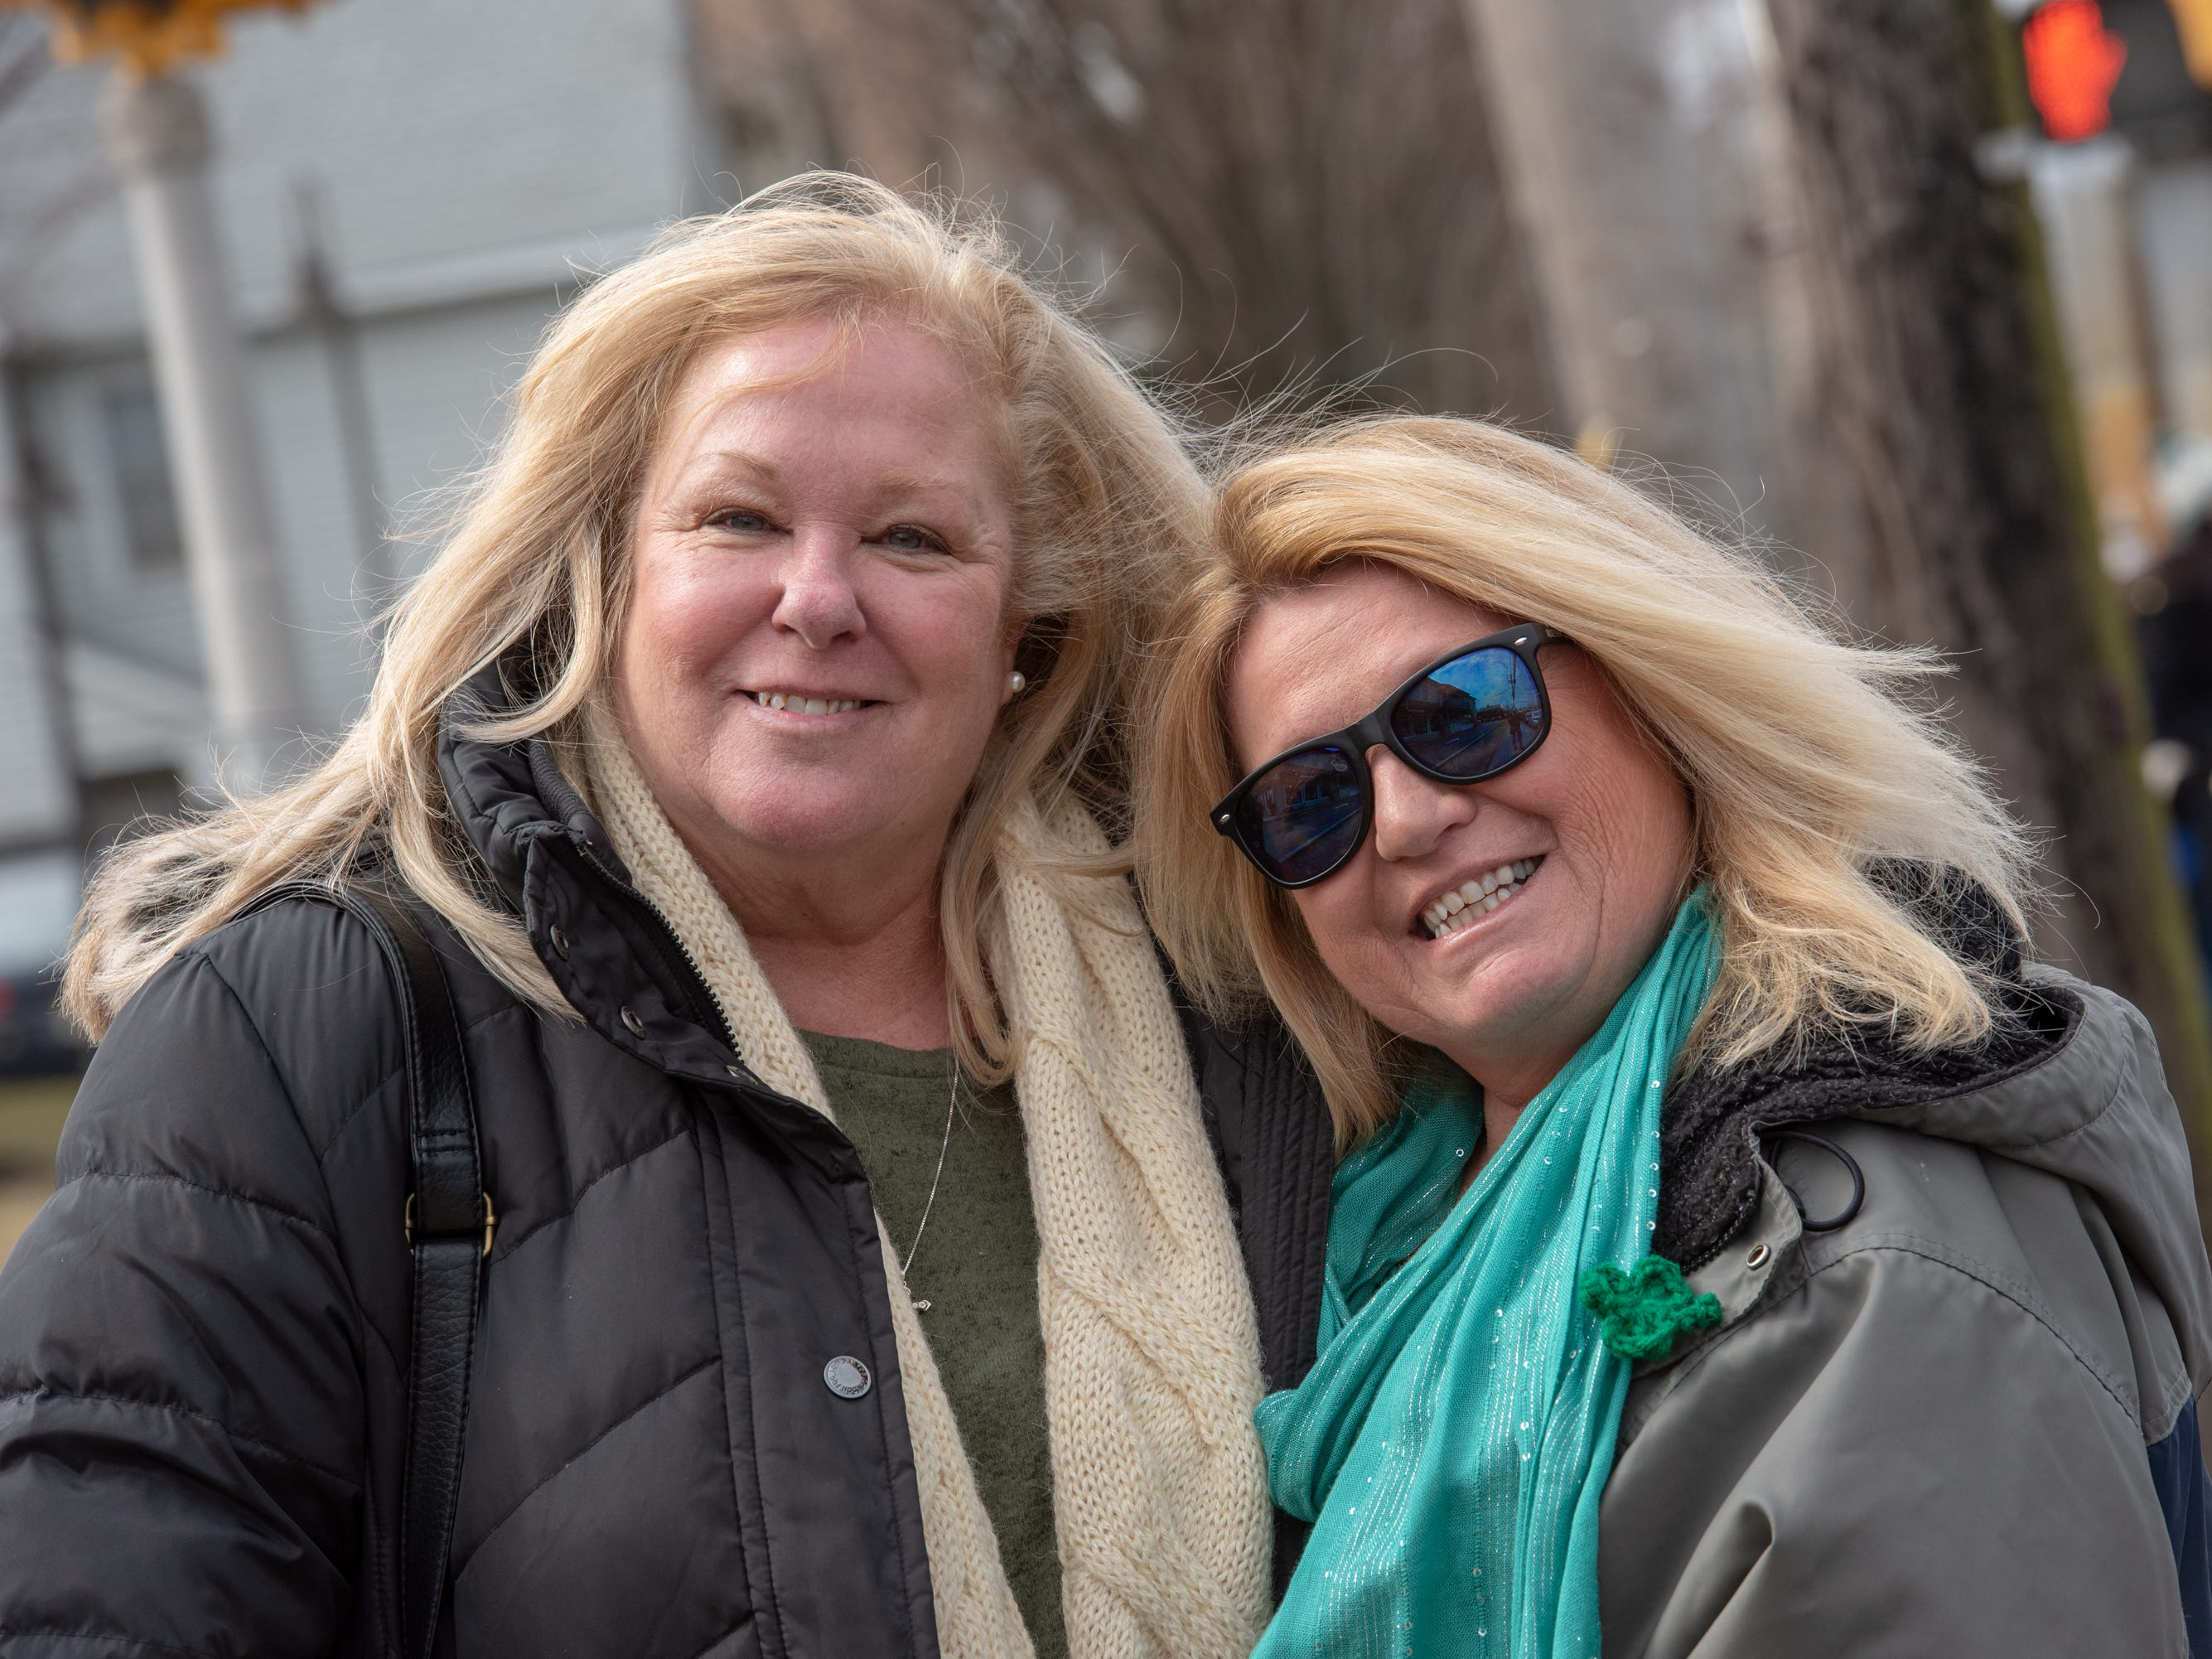 Bonnie Schneider (left) and Louise Dutt, both of Wall Twp., pose for the camera. The 46th annual Belmar/Lake Como St. Patrick's Day Parade was held in Belmar on March 3, 2019.